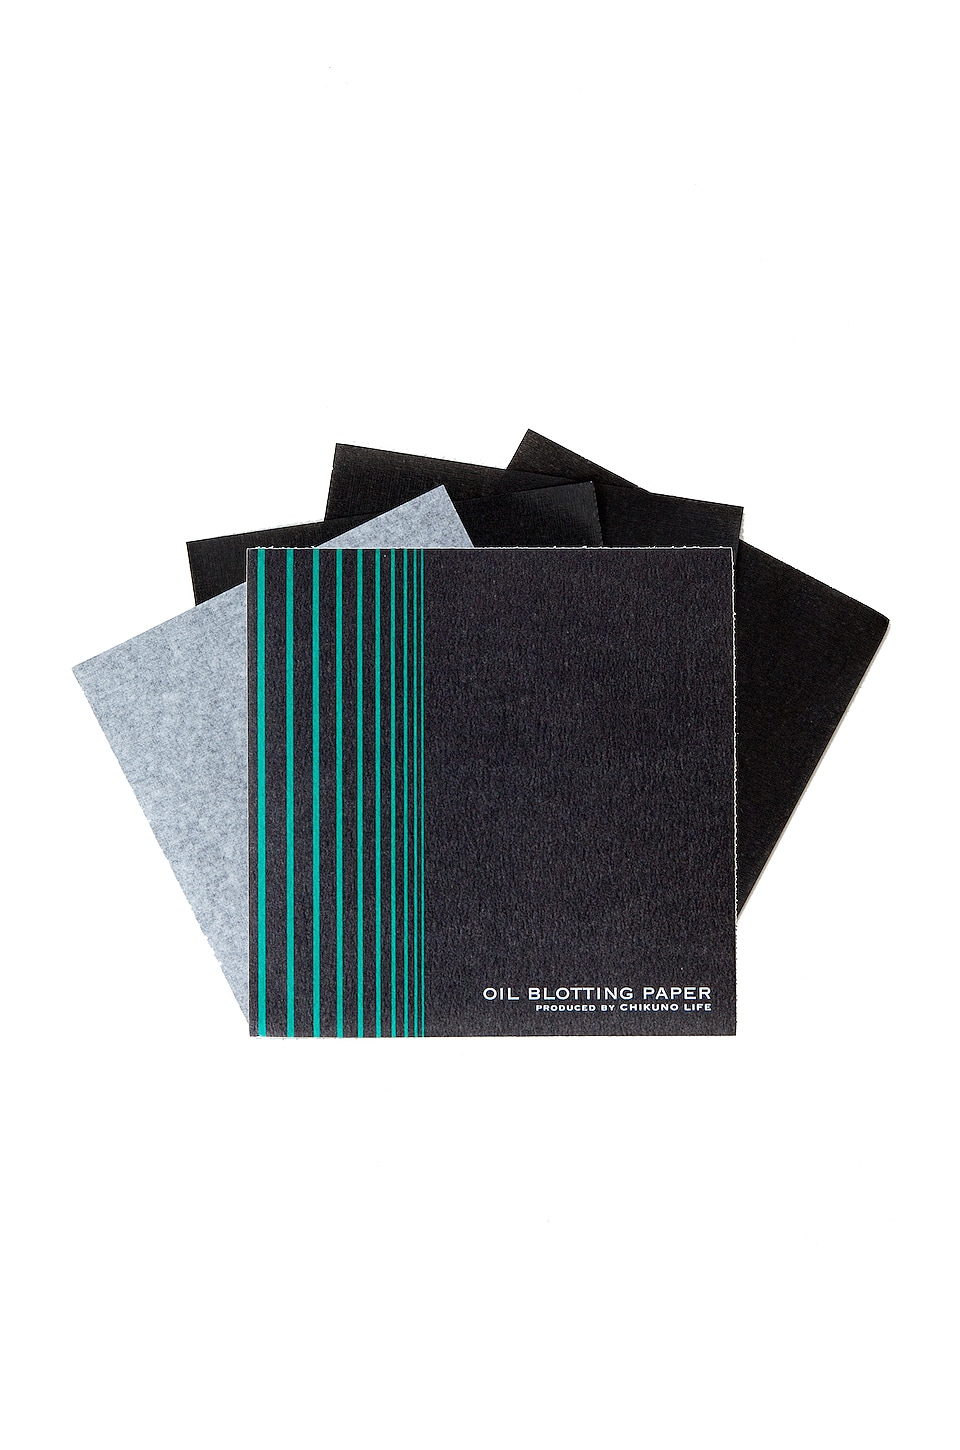 MORIHATA Charcoal Oil Blotting Papers